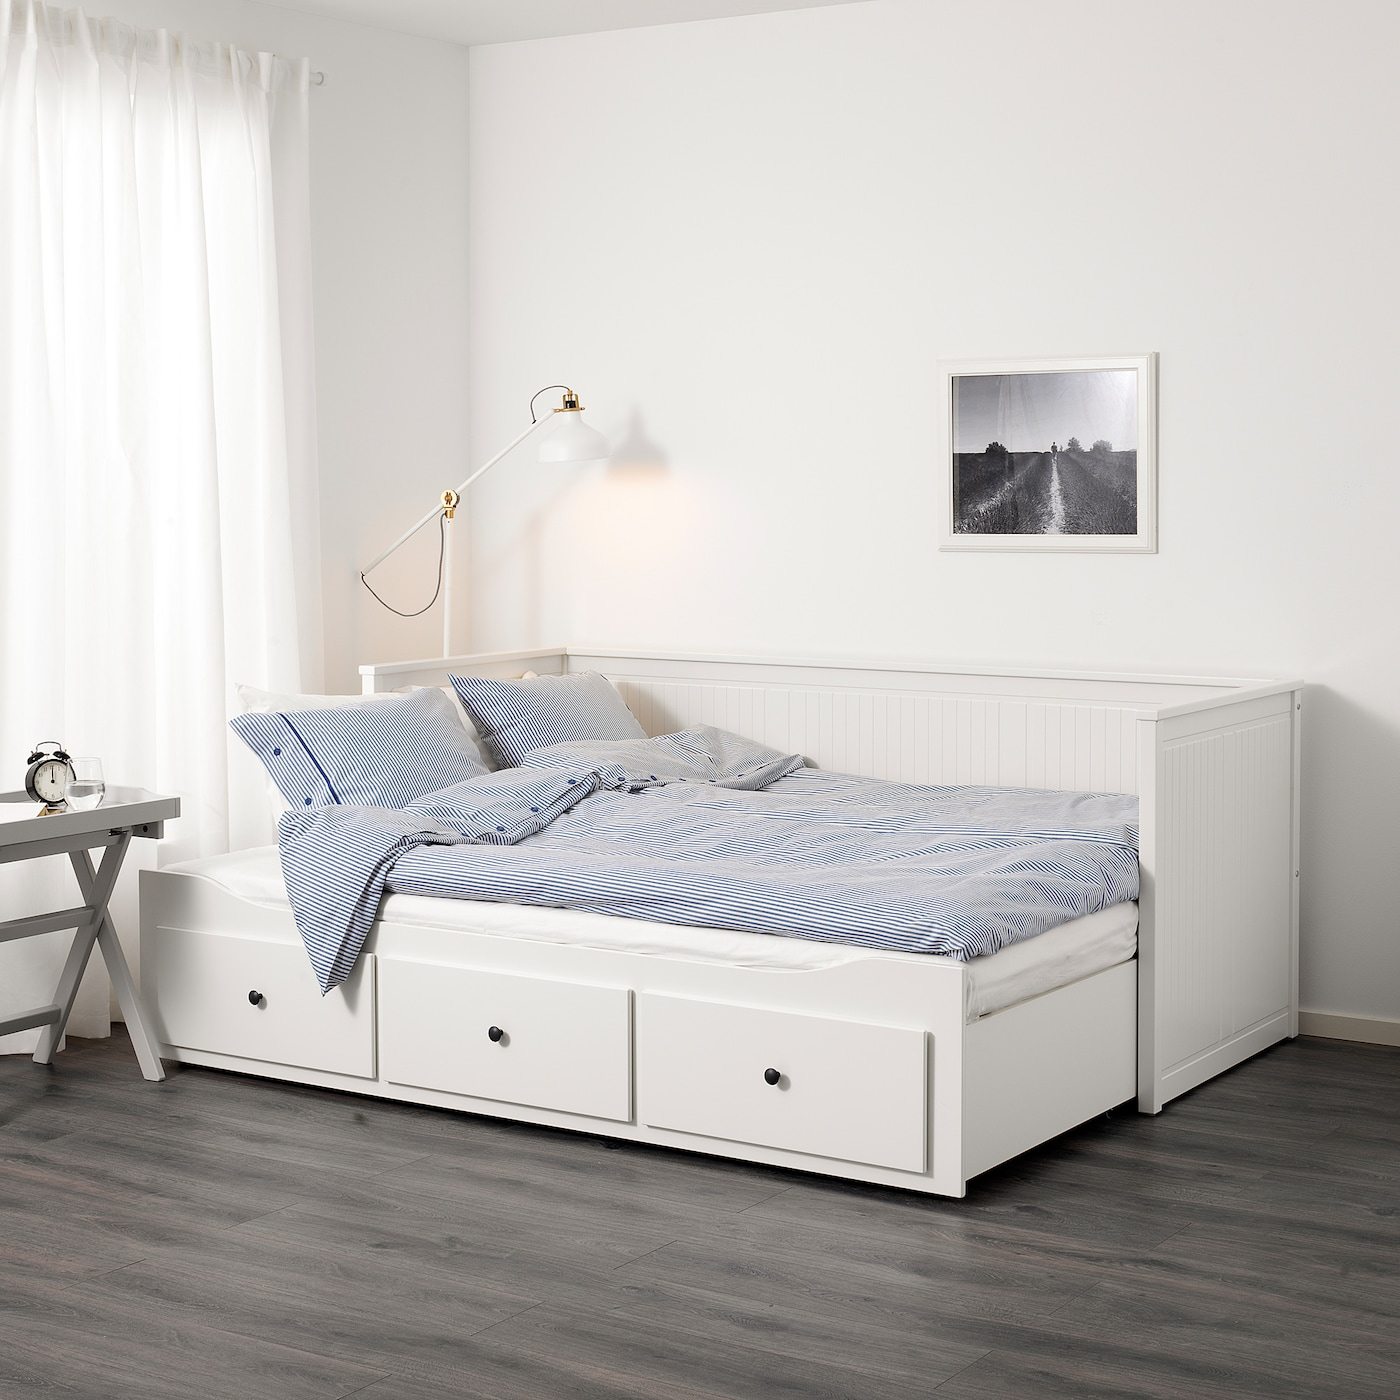 Picture of: Hemnes White Moshult Firm Day Bed W 3 Drawers 2 Mattresses 80×200 Cm Ikea